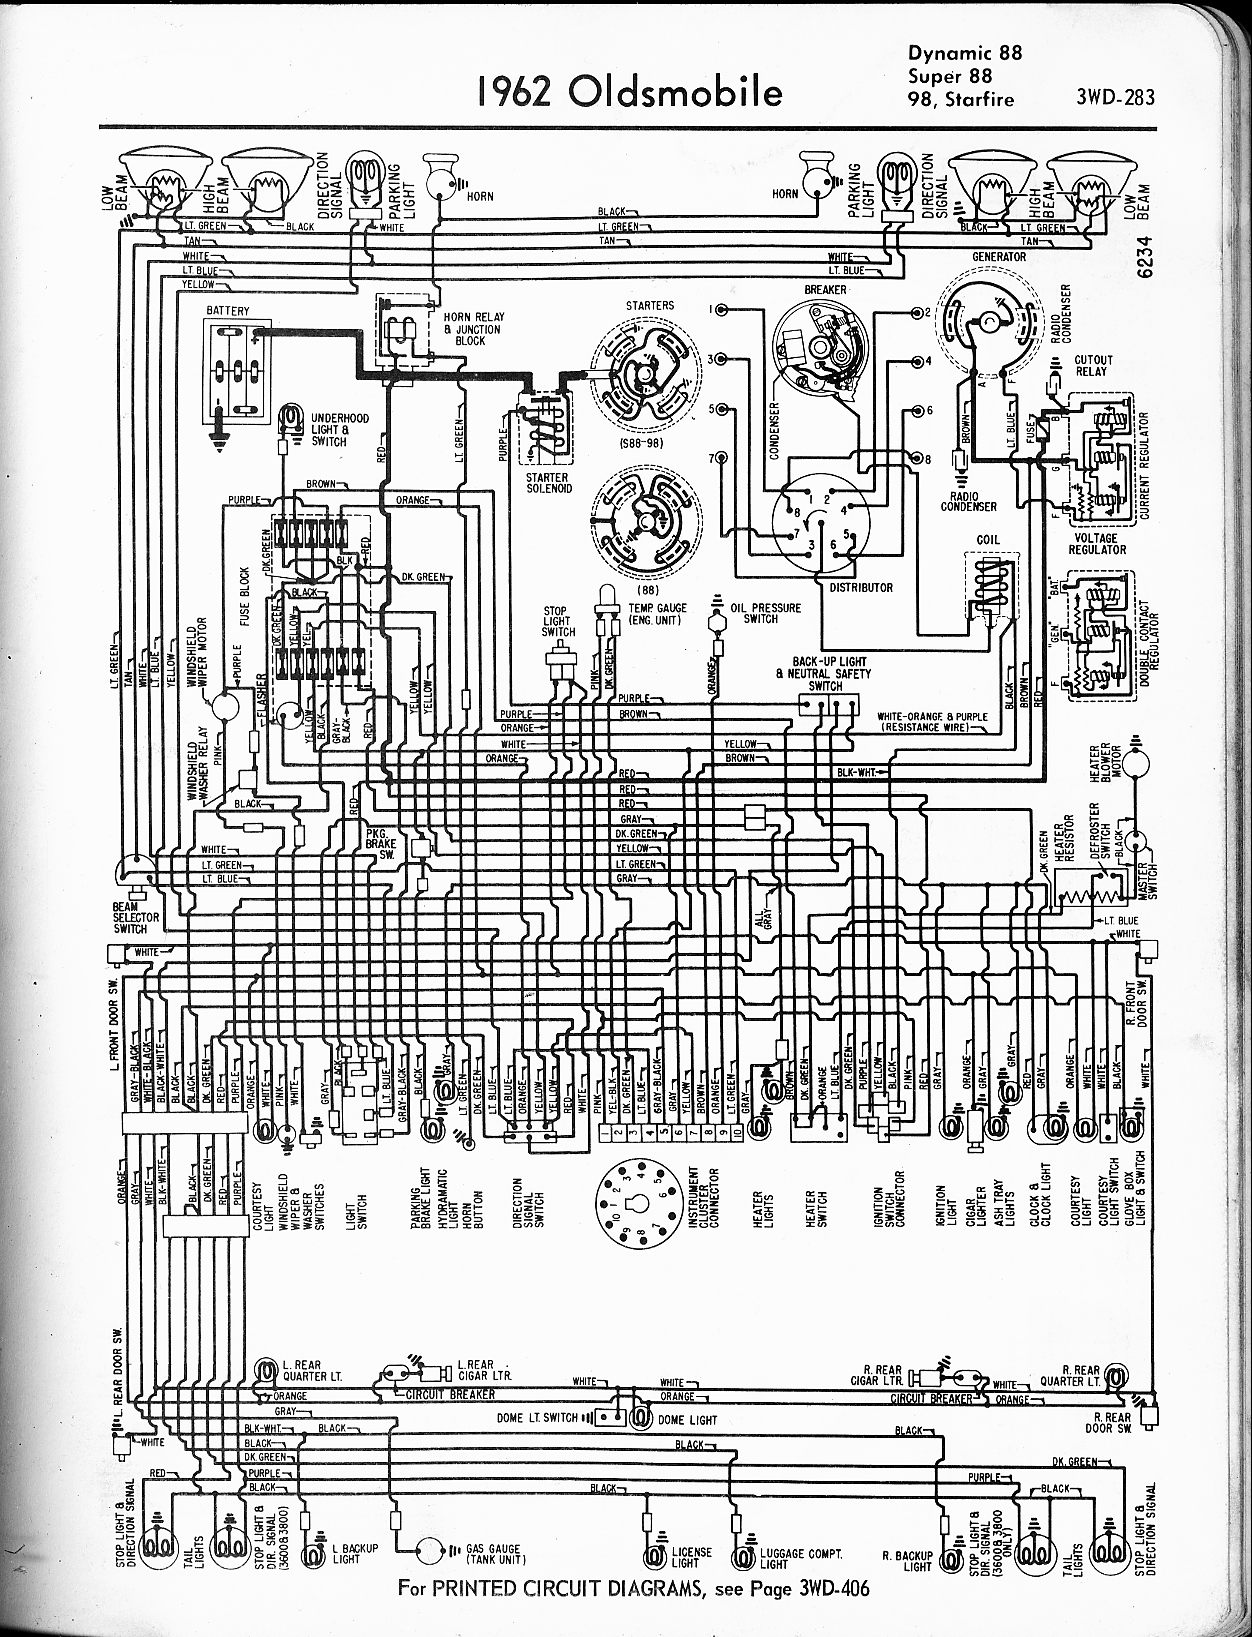 1964 oldsmobile wiring diagram 1962 oldsmobile wiring diagram 1962 wiring diagrams online oldsmobile wiring diagrams the old car manual project